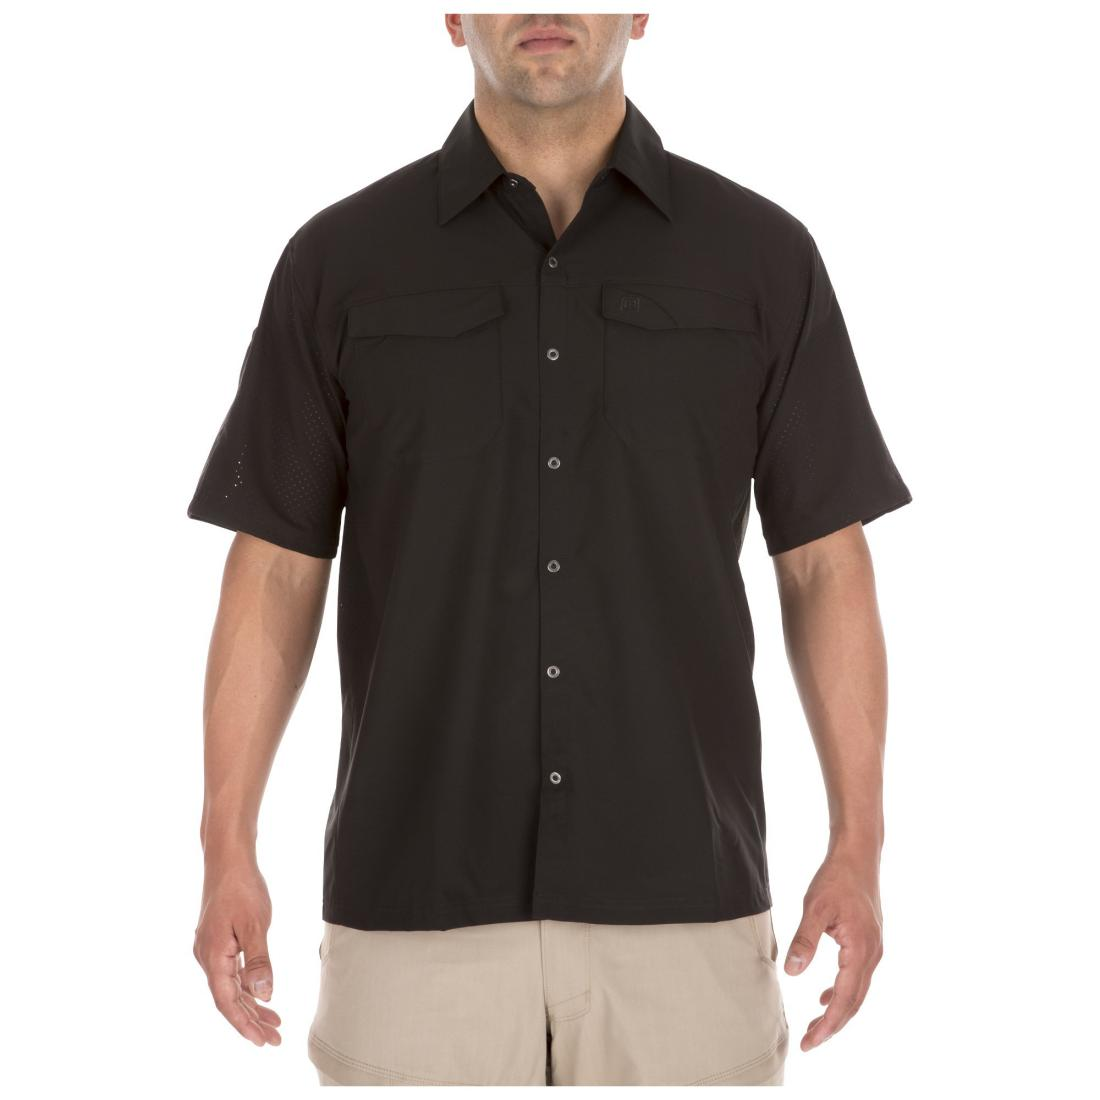 5.11 Tactical 71340 Men Freedom Flex Woven Short Sleeve Shirt Black